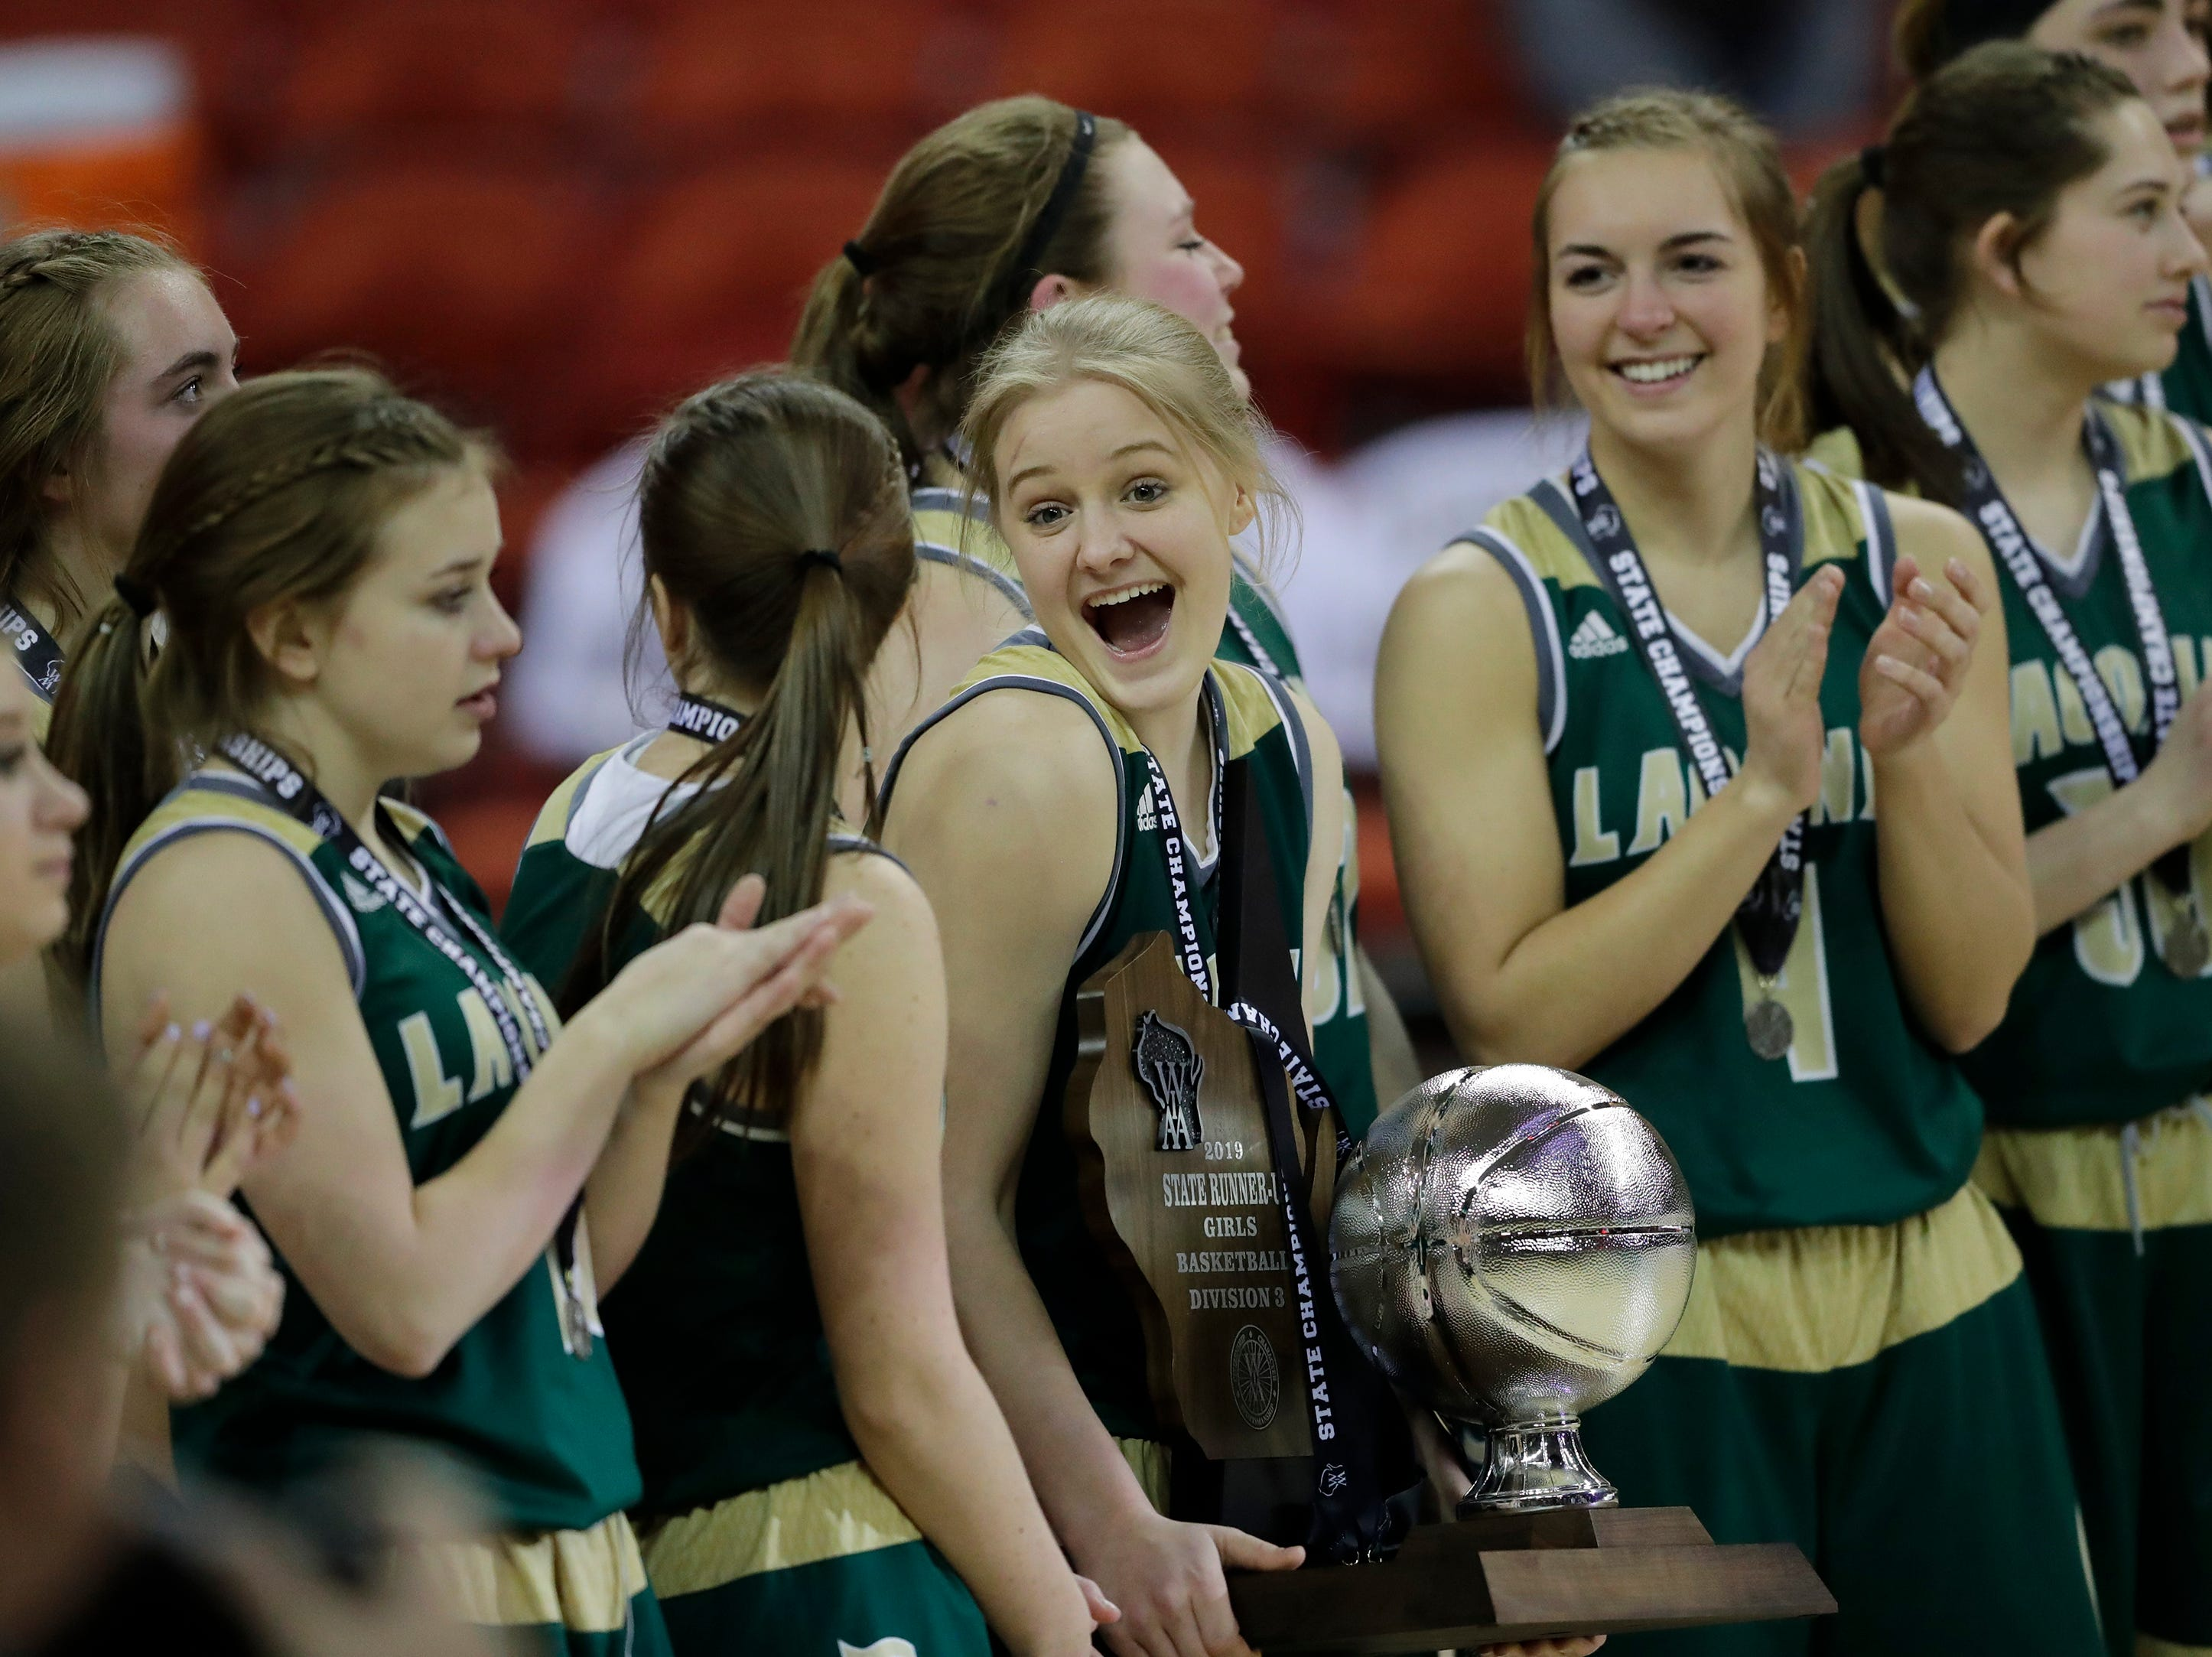 Laconia's Faith Weed (11) has a little fun with the runner-up trophy after a 64-56 loss to Marshall during their Division 3 championship game at the WIAA girls state basketball tournament Saturday, March 9, 2019, at the Resch Center in Ashwaubenon, Wis. Dan Powers/USA TODAY NETWORK-Wisconsin